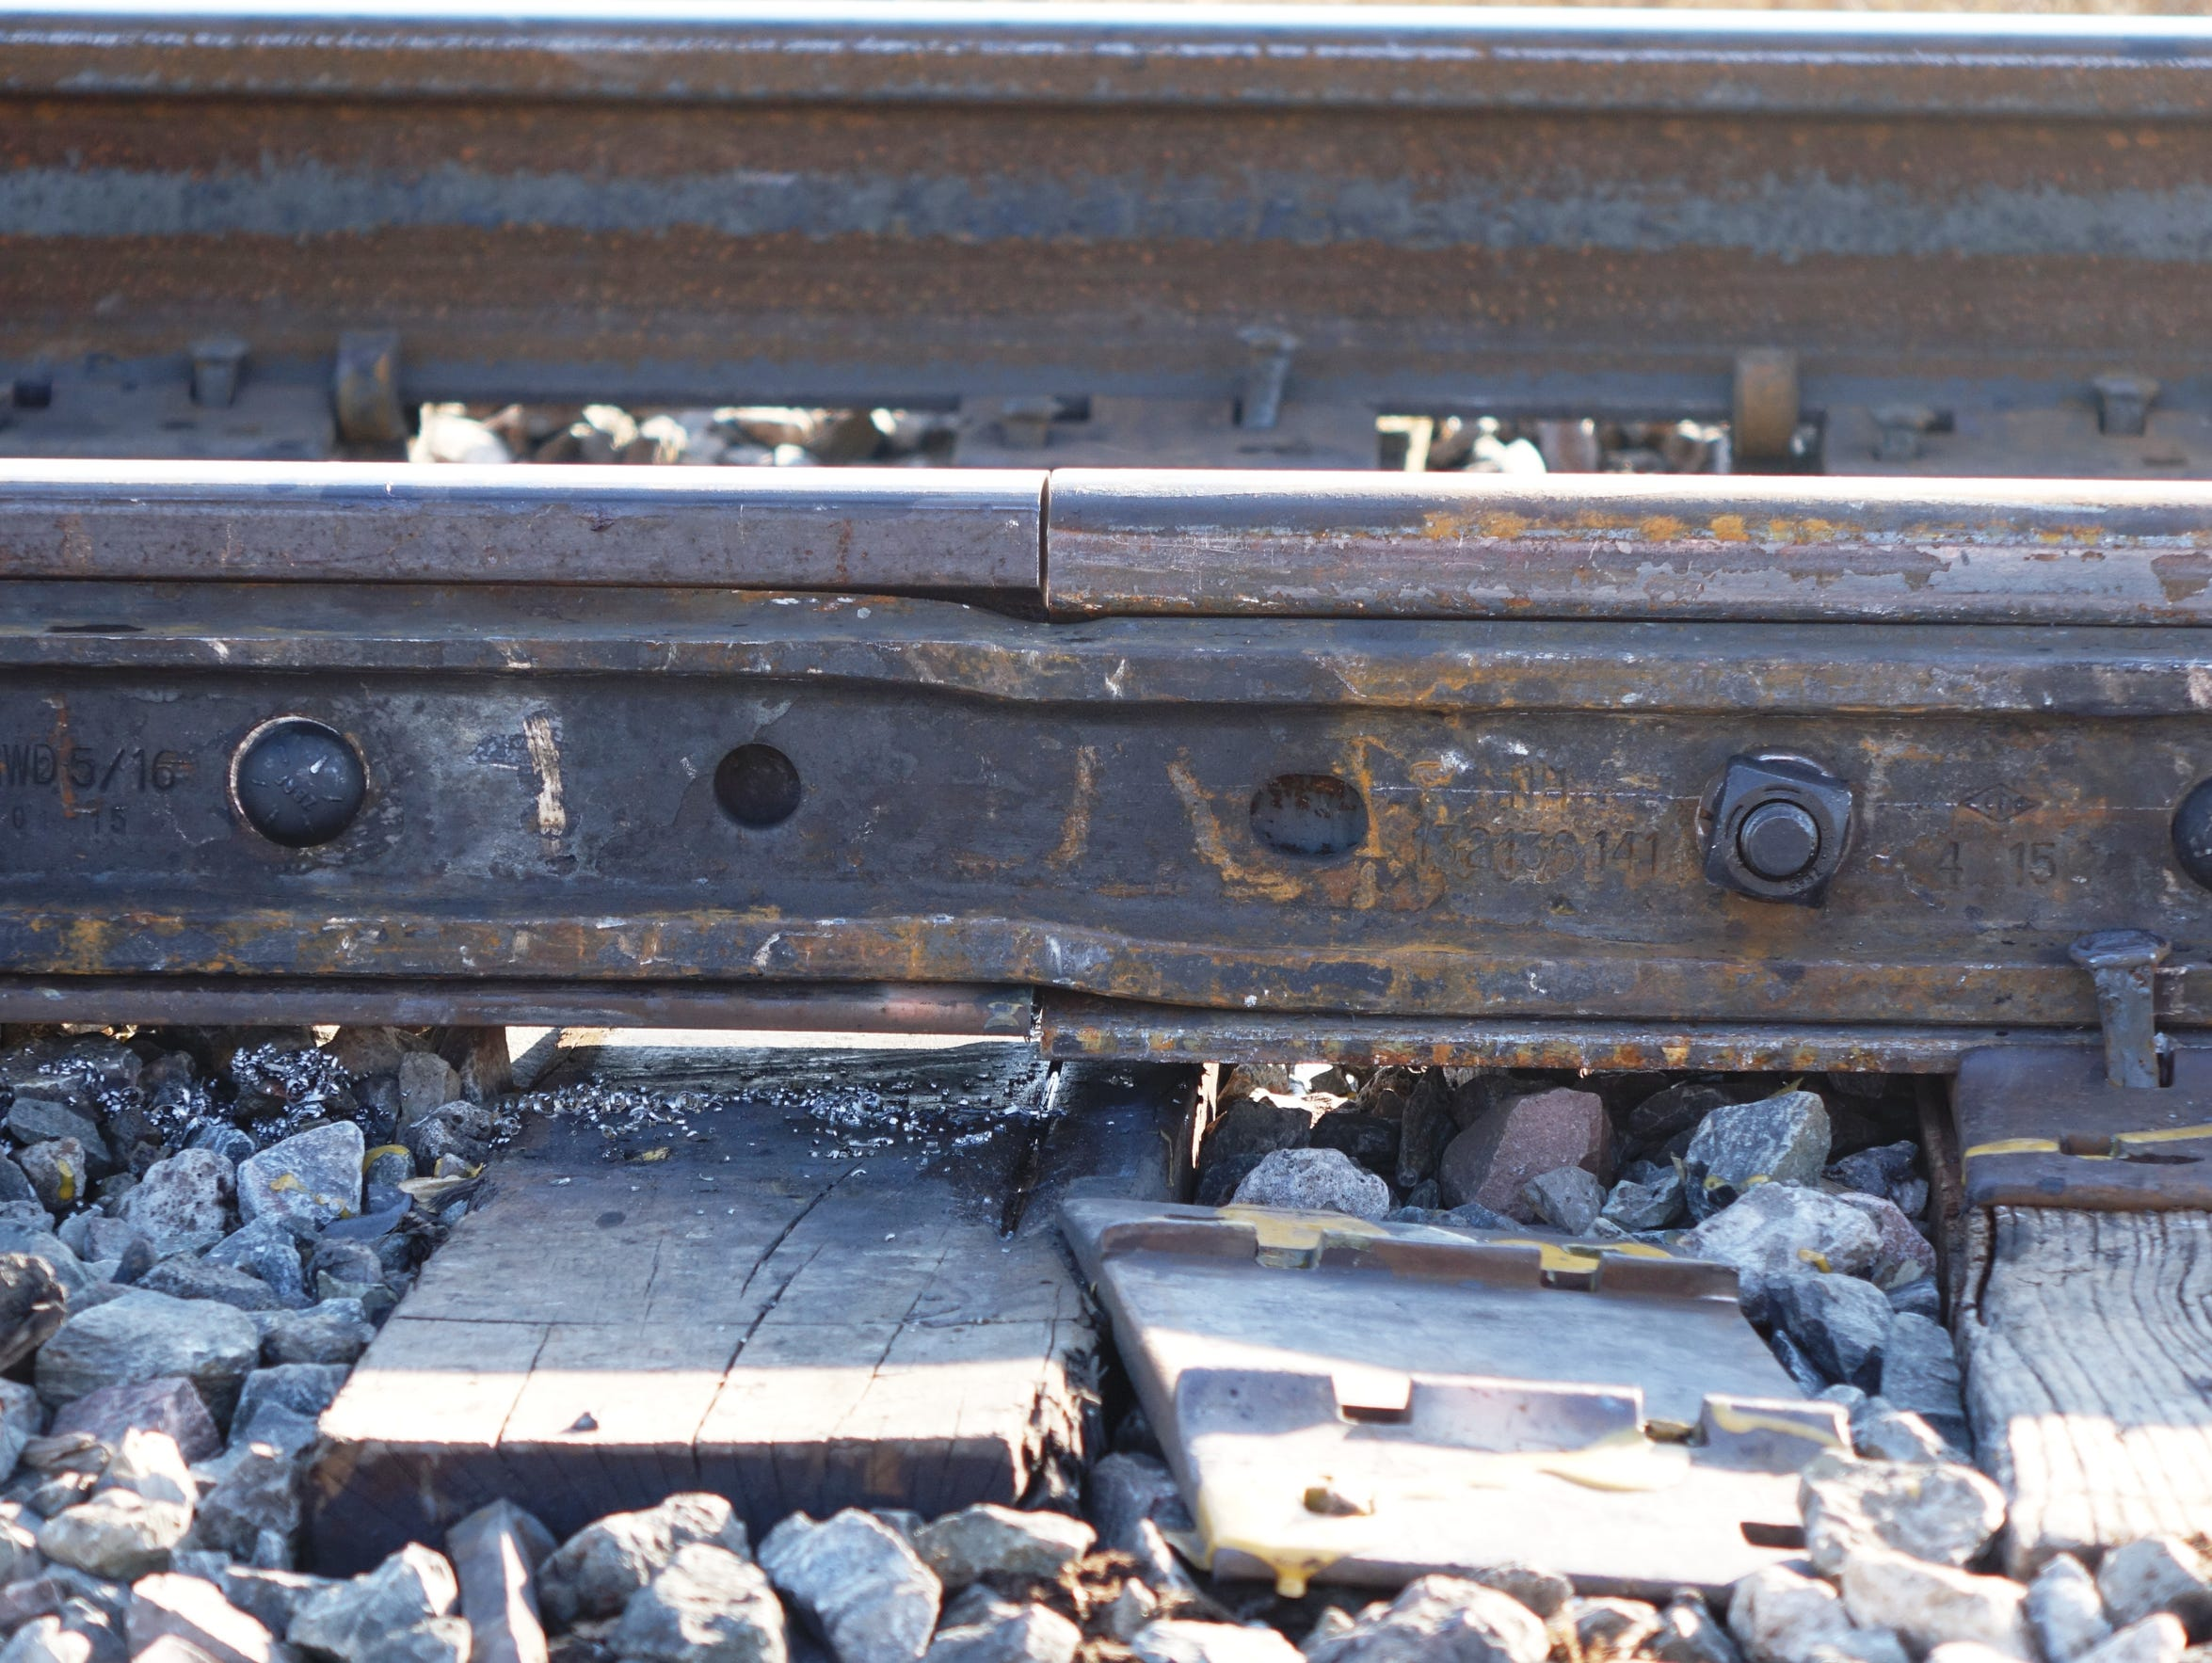 A plate holds together two pieces of rail: the historic